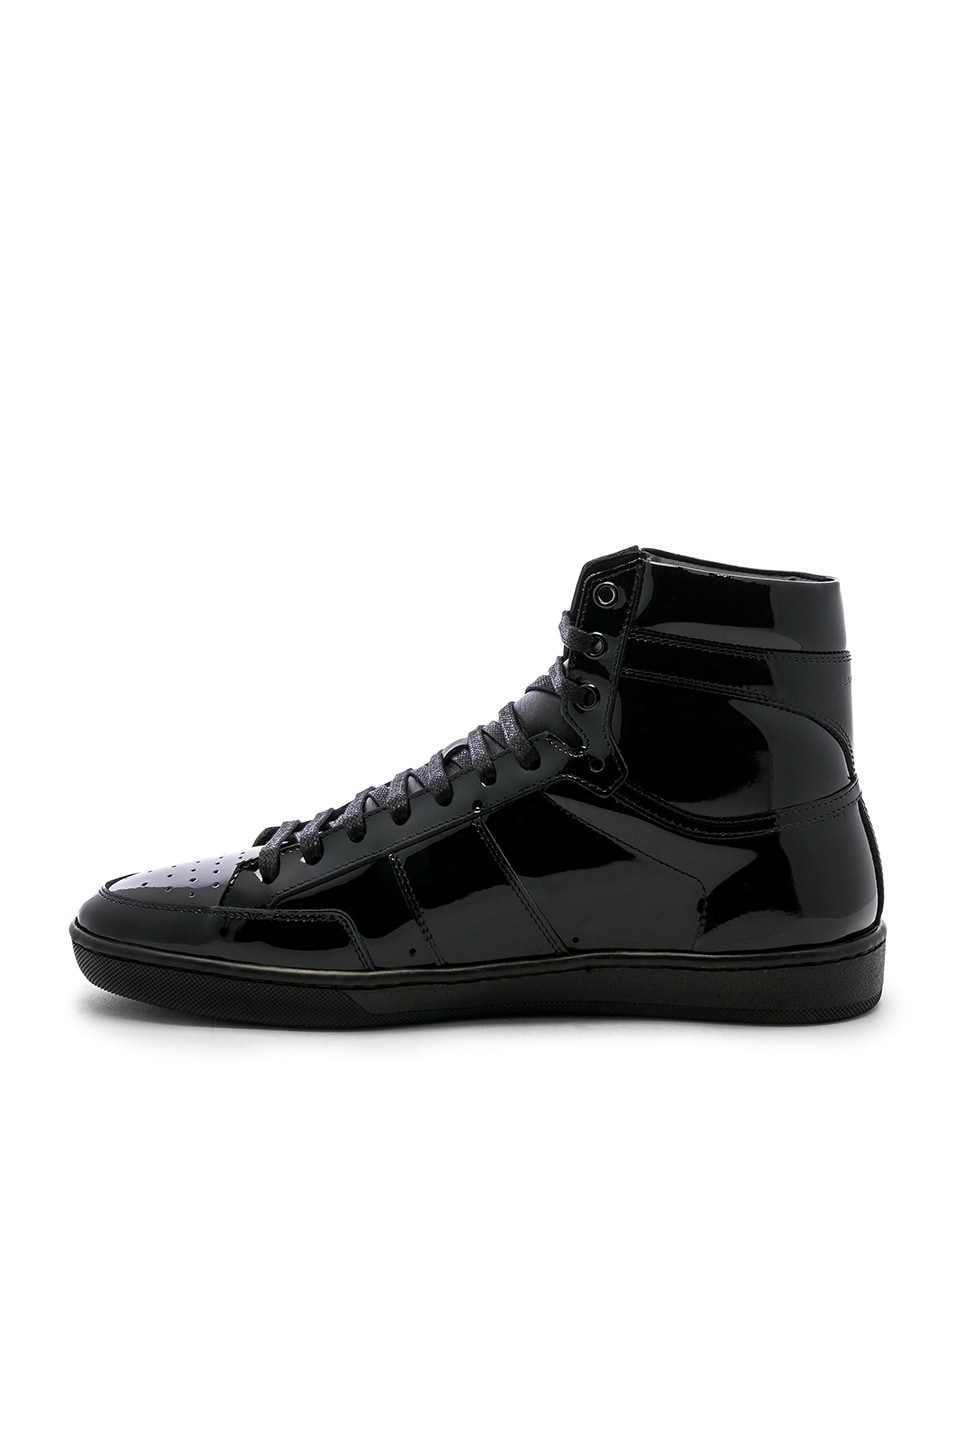 Image 5 of Saint Laurent Signature Court Classic SL/10H Leather Hi-Top Sneaker in Black & Black